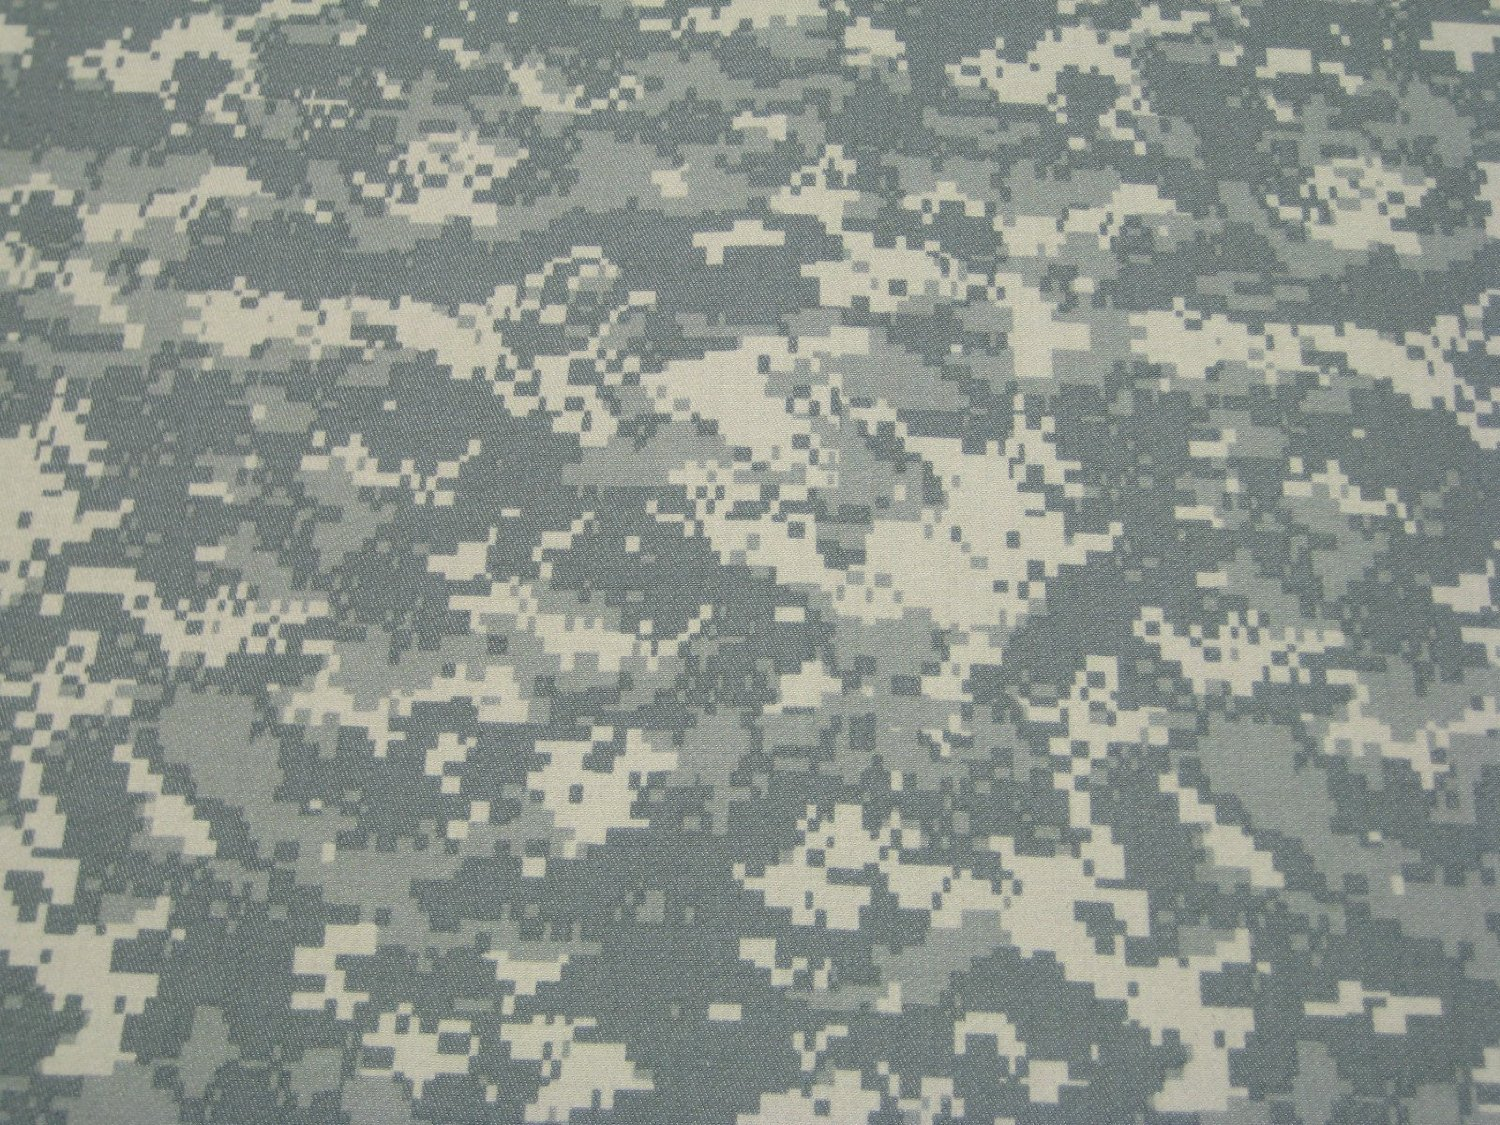 military self discipline essays Military self discipline essays to copy, can someone write my personal statement for me, mfa creative writing uk online.